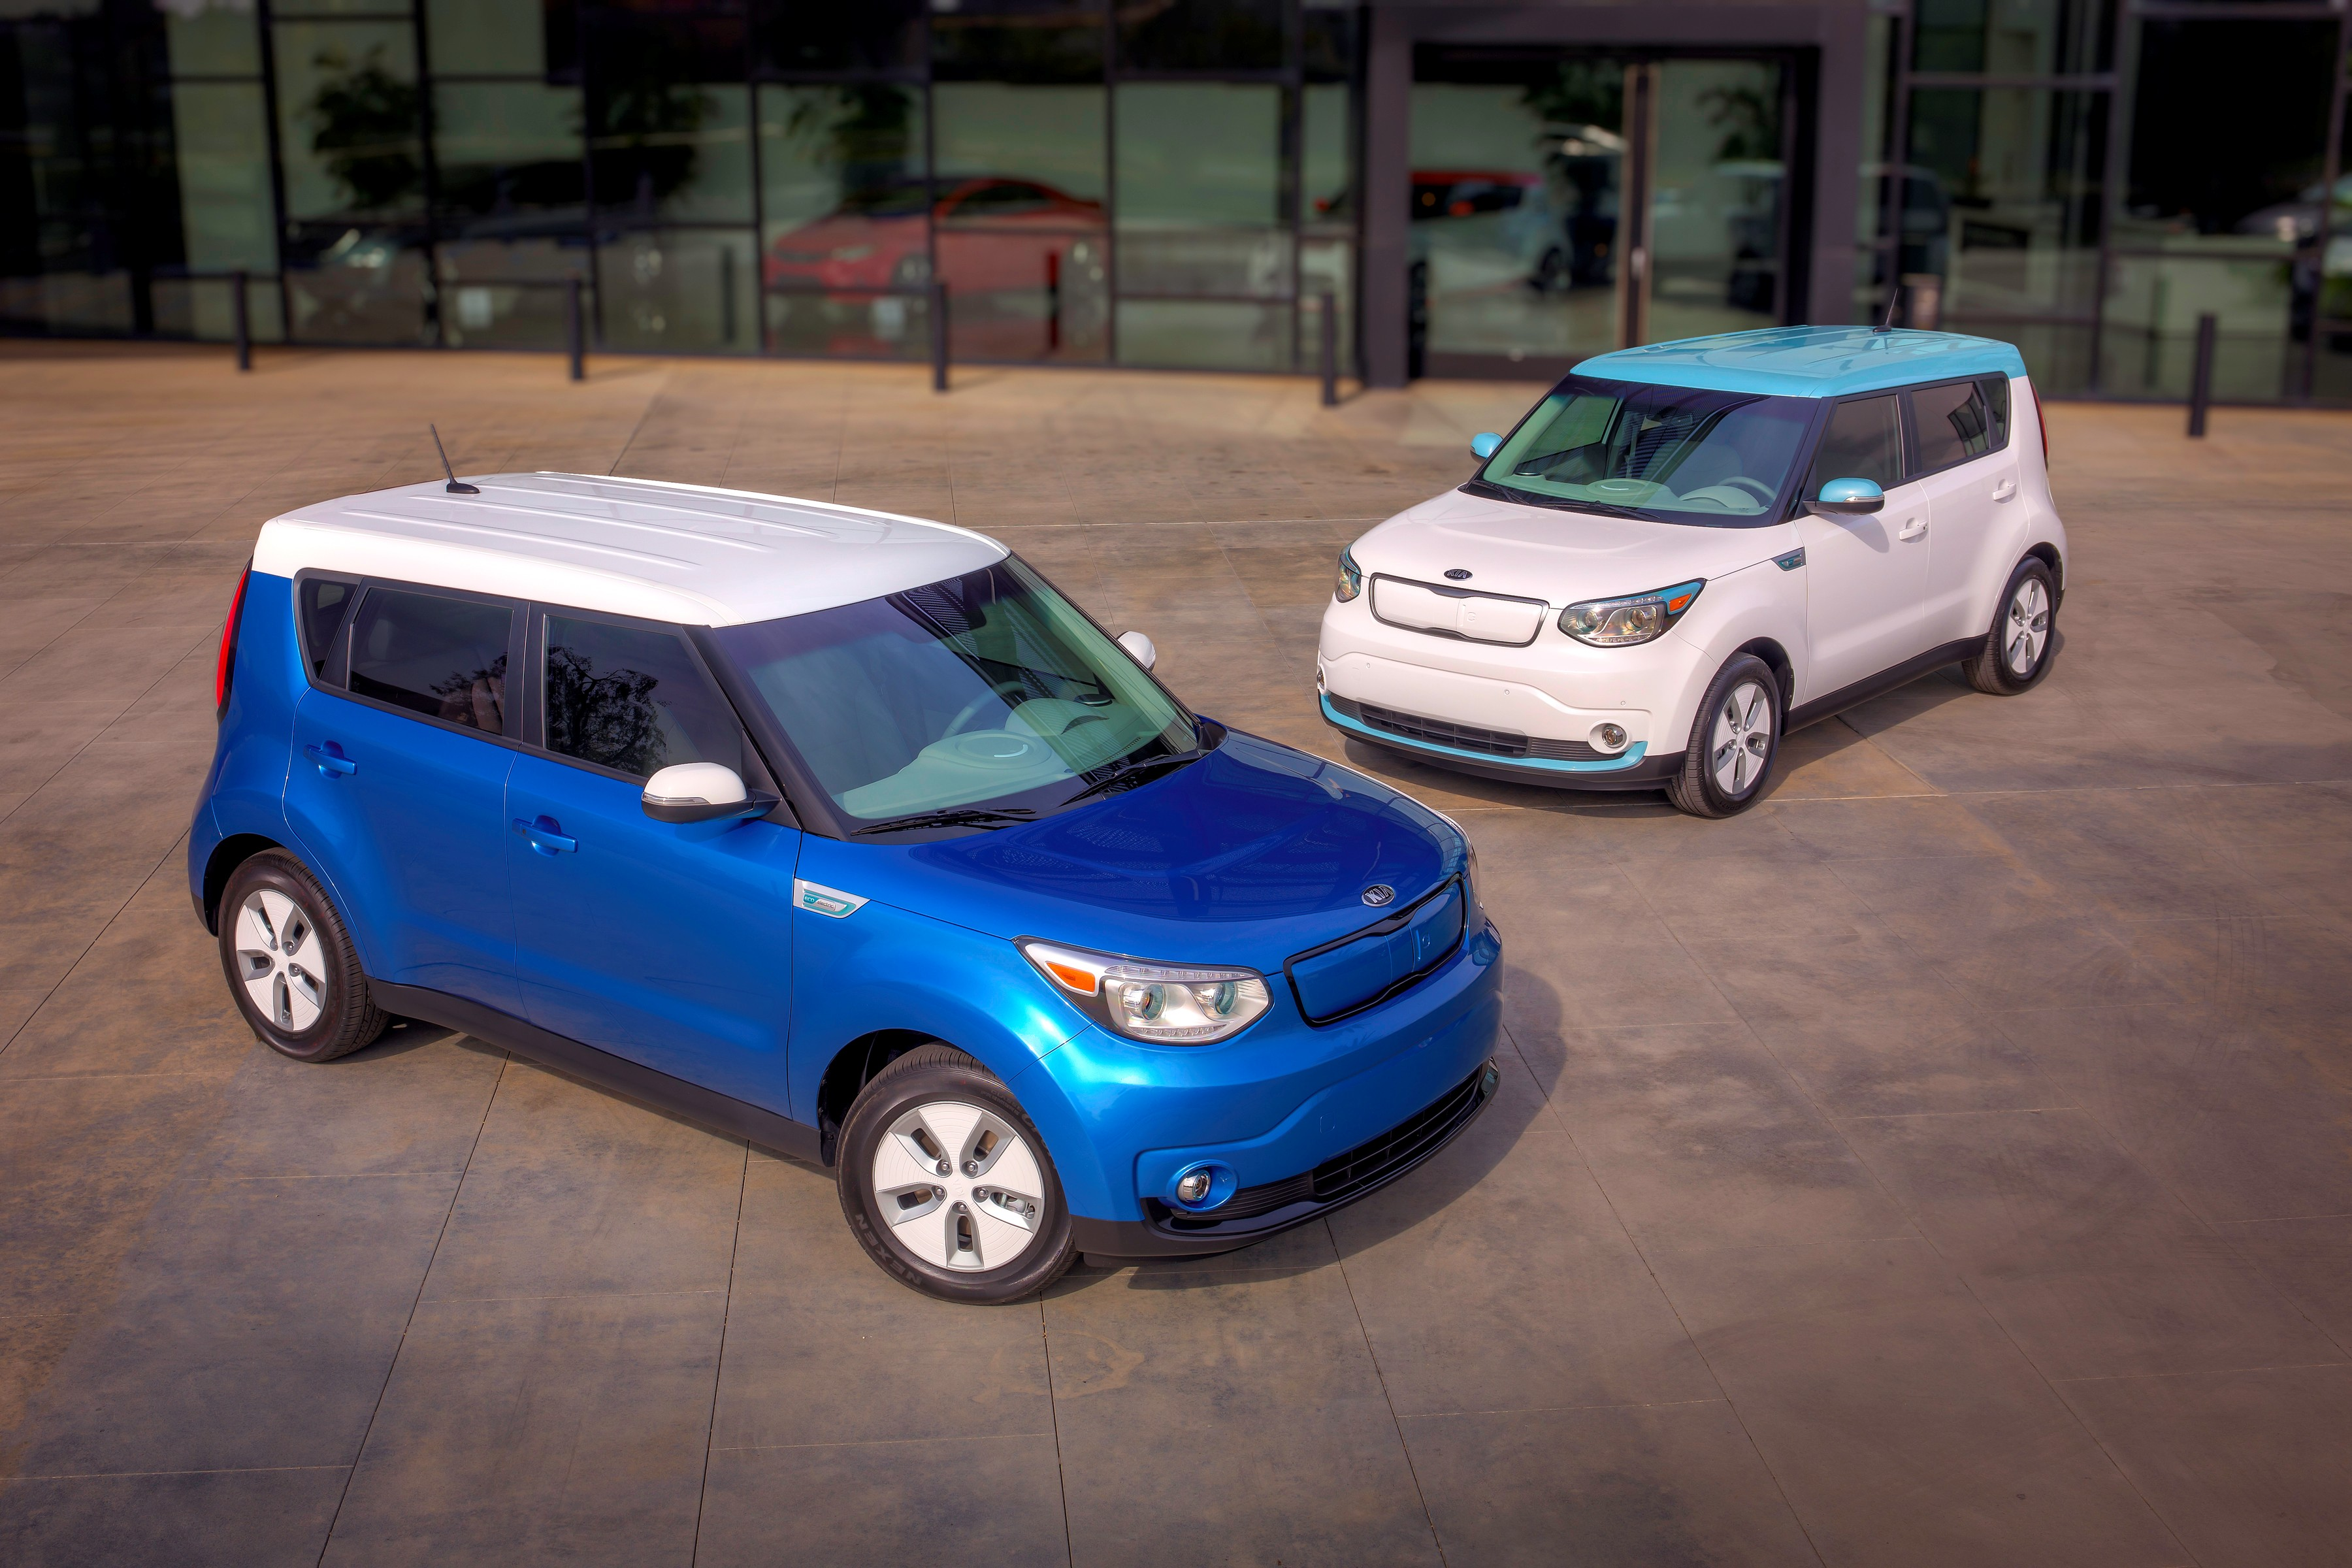 2015 kia soul ev electric car unveiled at chicago auto show. Black Bedroom Furniture Sets. Home Design Ideas